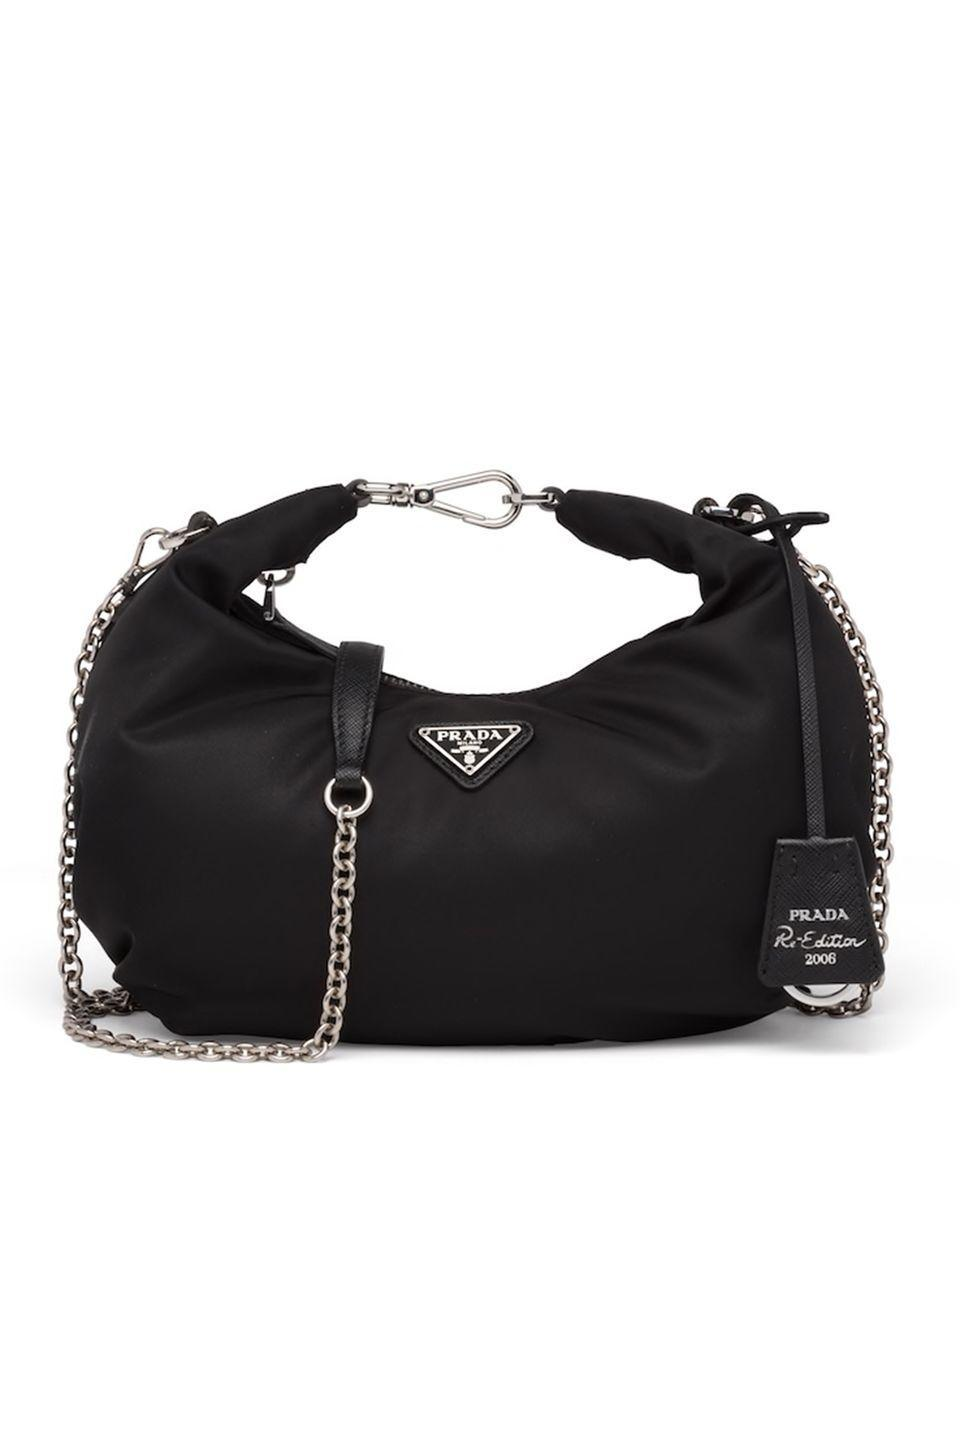 "<p>Prada's iconic nylon bags, first introduced in the '90s, have made an undeniable comeback, and we don't see their technical fabric losing popularity any time soon. The brand has been reissuing classic styles—like this <a href=""https://www.prada.com/us/en/products.re-edition_2000_nylon_mini_bag.1NE515_2DH0_F0638.html"" rel=""nofollow noopener"" target=""_blank"" data-ylk=""slk:2000 shoulder tote"" class=""link rapid-noclick-resp"">2000 shoulder tote </a>you've seen all over Instagram—but the latest is our favorite to date. The update has a removable chainlink strap that can be worn both across the shoulder, or be handheld from the tough, top-handle clasp. </p><p><em>Prada, $1,100; prada.com</em></p><p><a class=""link rapid-noclick-resp"" href=""https://www.prada.com/us/en/women/bags/shoulder_bags/products.prada_re-edition_2006_nylon_bag.1BH172_064_F0002_V_OOO.html"" rel=""nofollow noopener"" target=""_blank"" data-ylk=""slk:SHOP NOW"">SHOP NOW</a></p>"